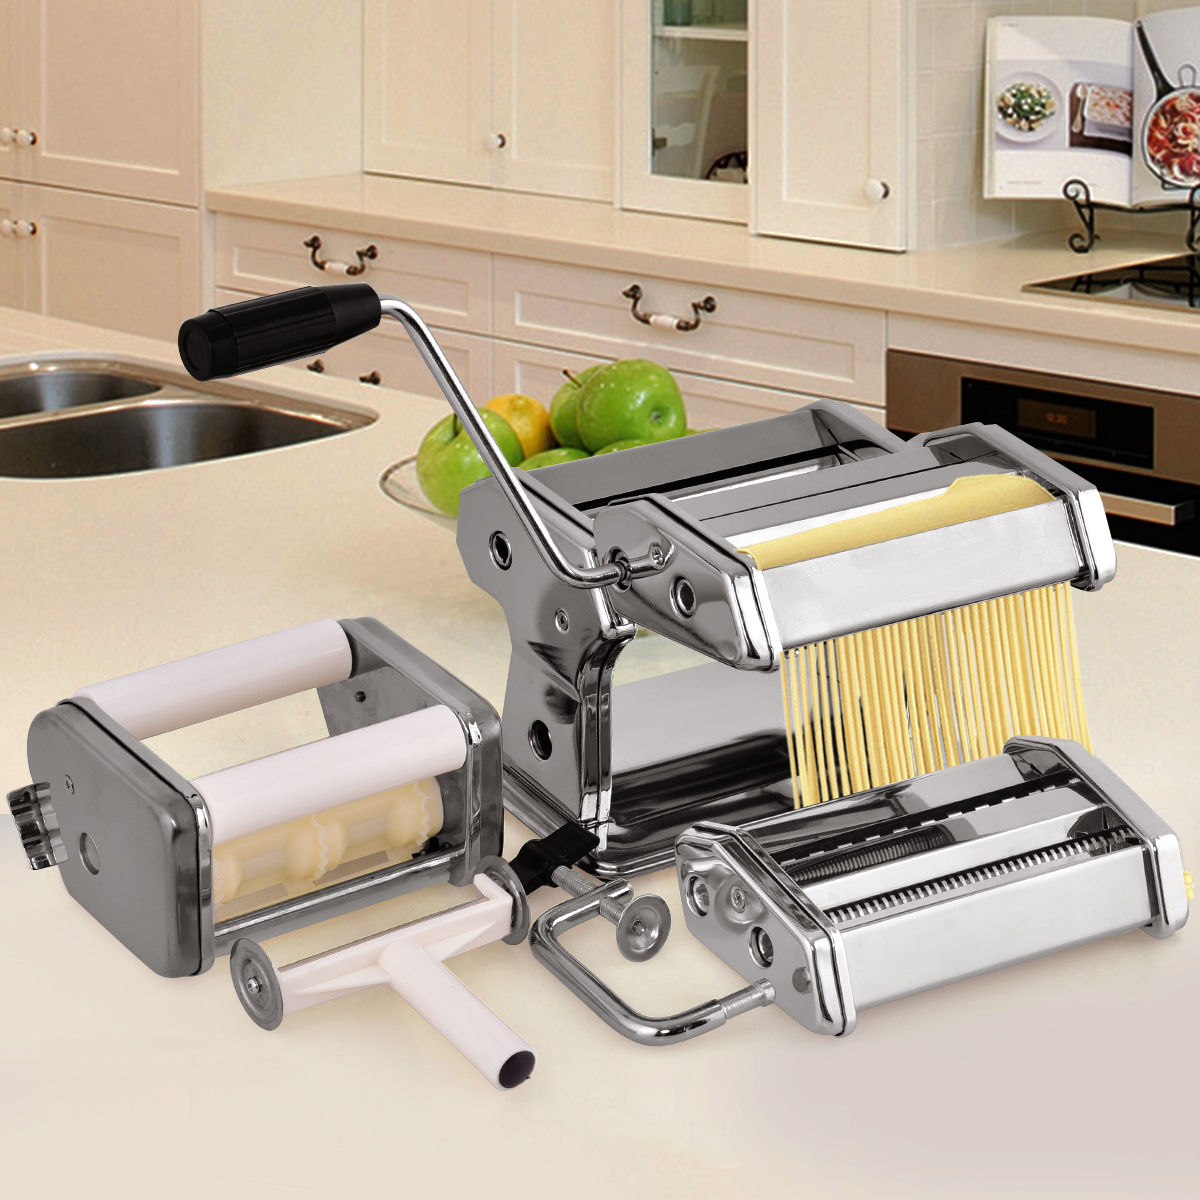 Costway 5 in 1 Stainless Steel Pasta Lasagna Spaghetti Tagliatelle Ravioli Maker Machine by Costway